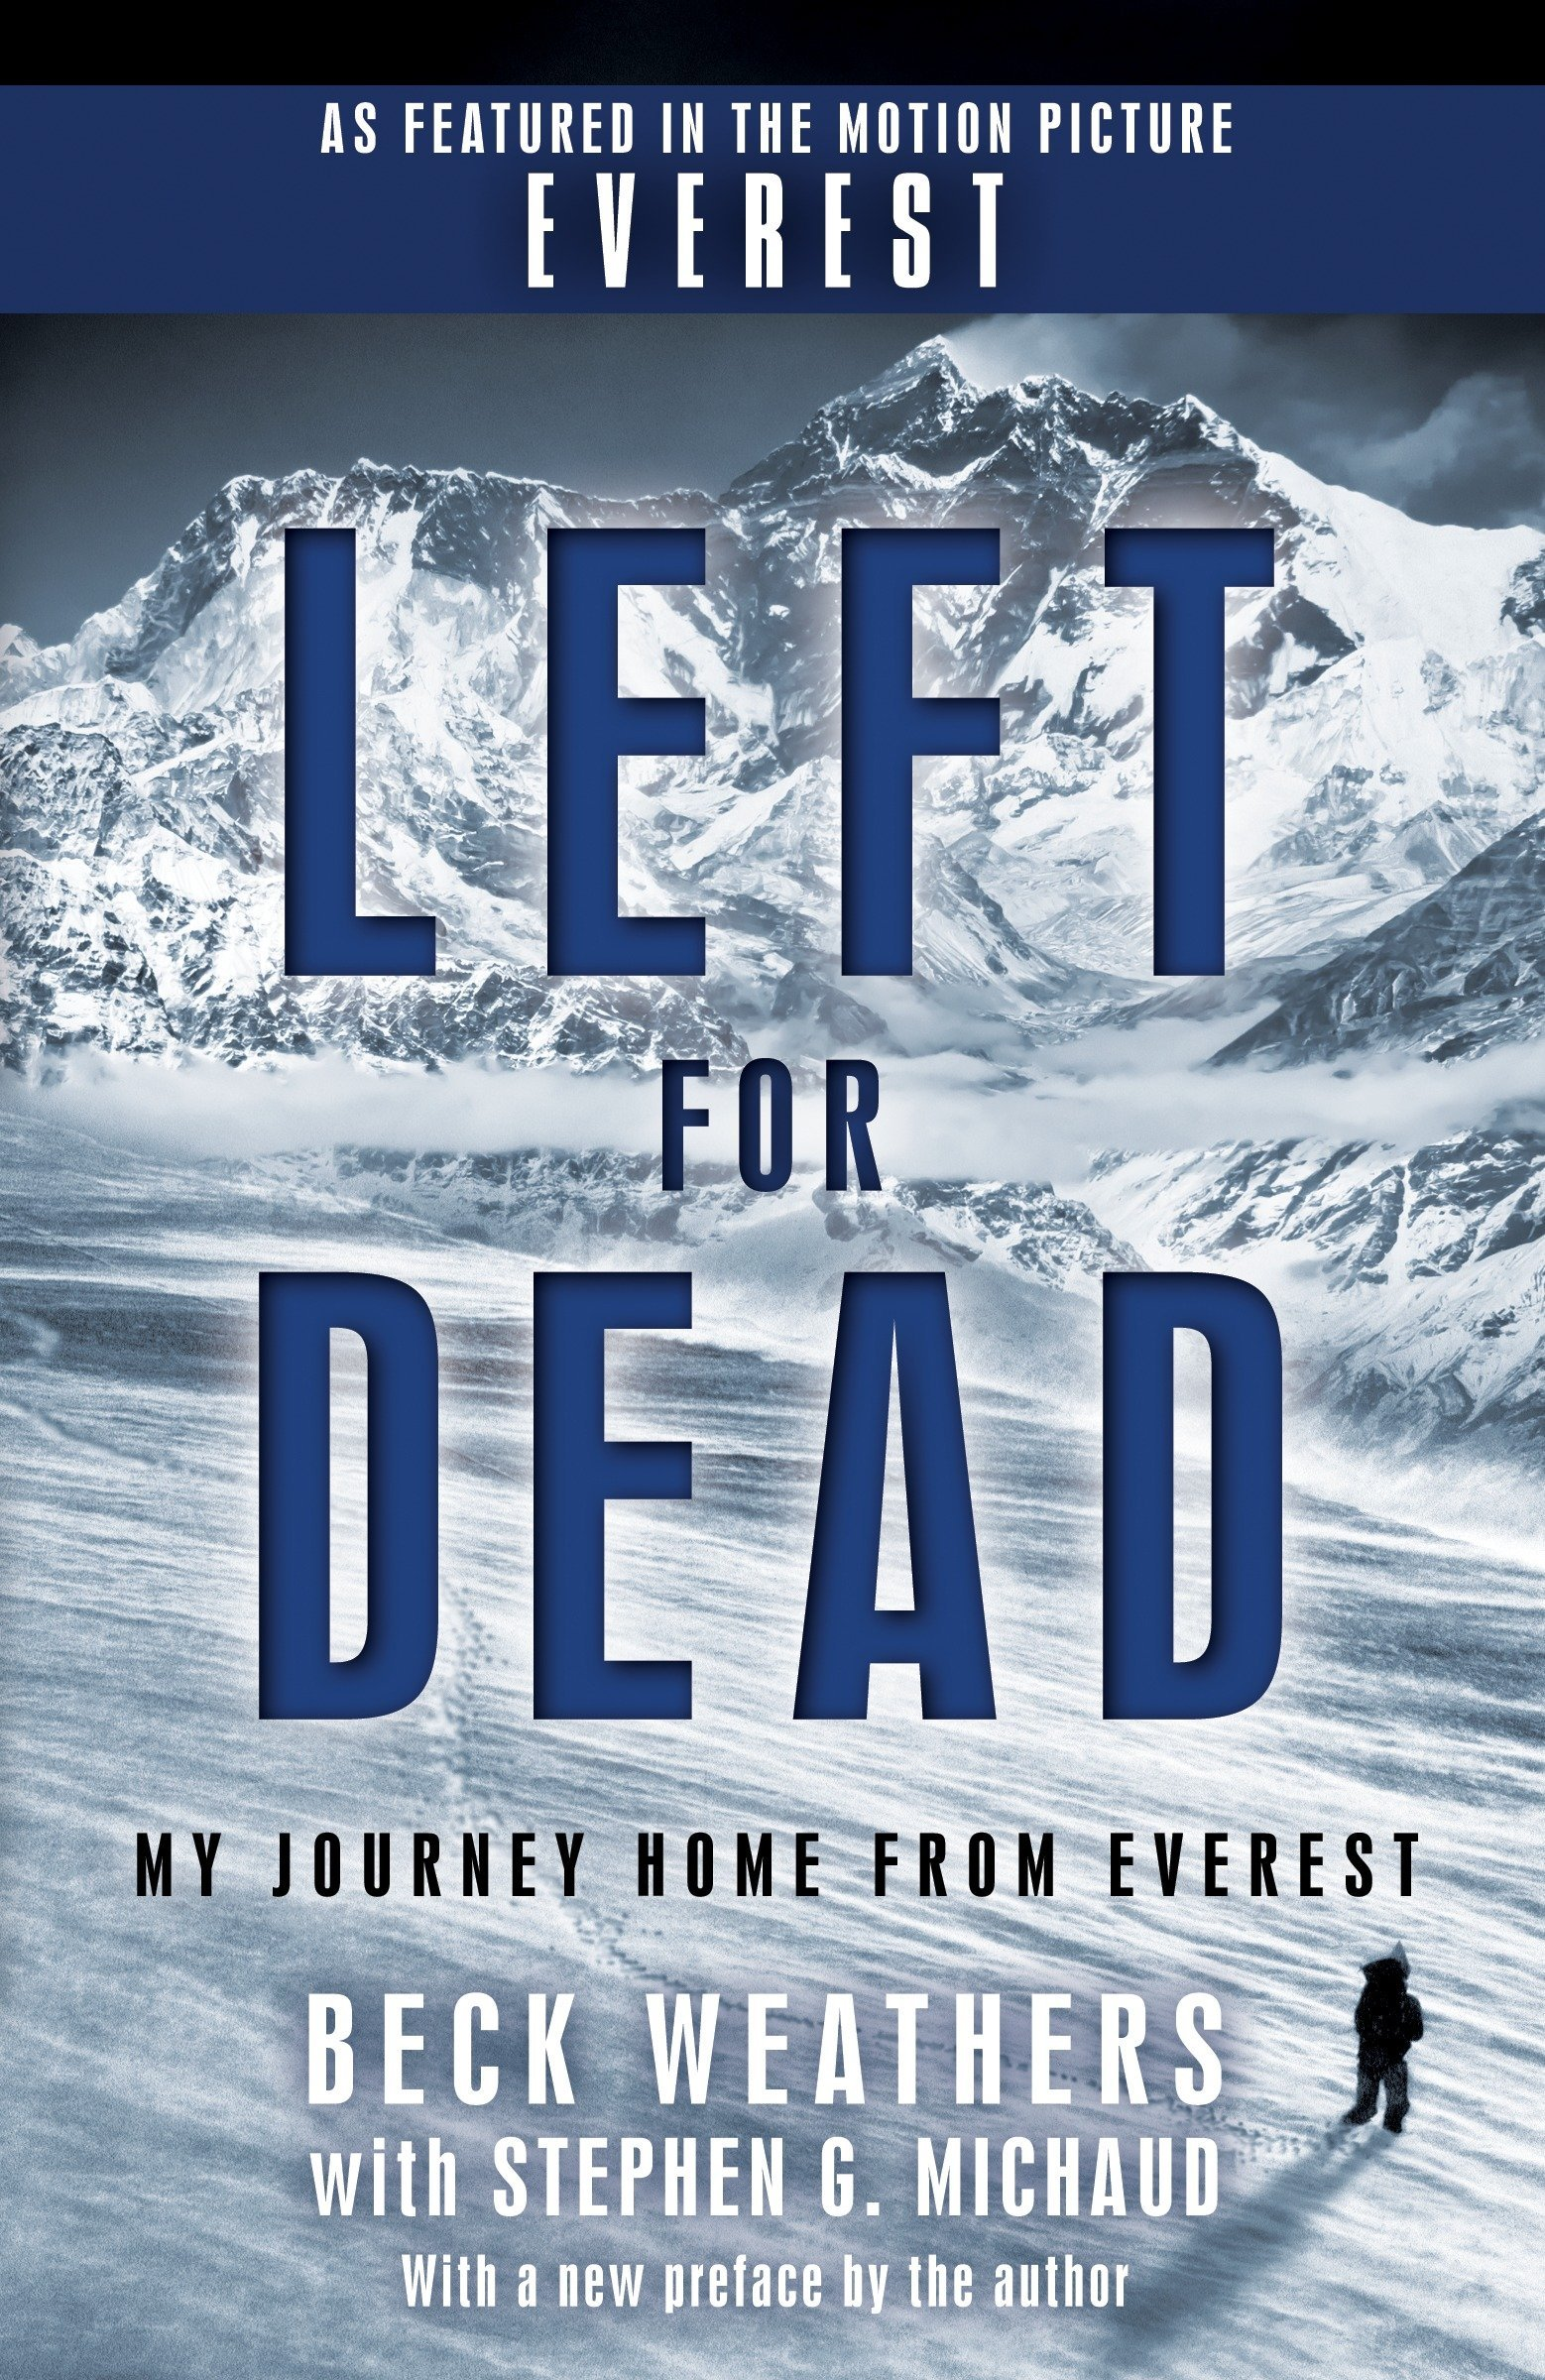 Left for Dead (Movie Tie-in Edition): My Journey Home from Everest: Beck  Weathers, Stephen G. Michaud: 9780440509172: Amazon.com: Books